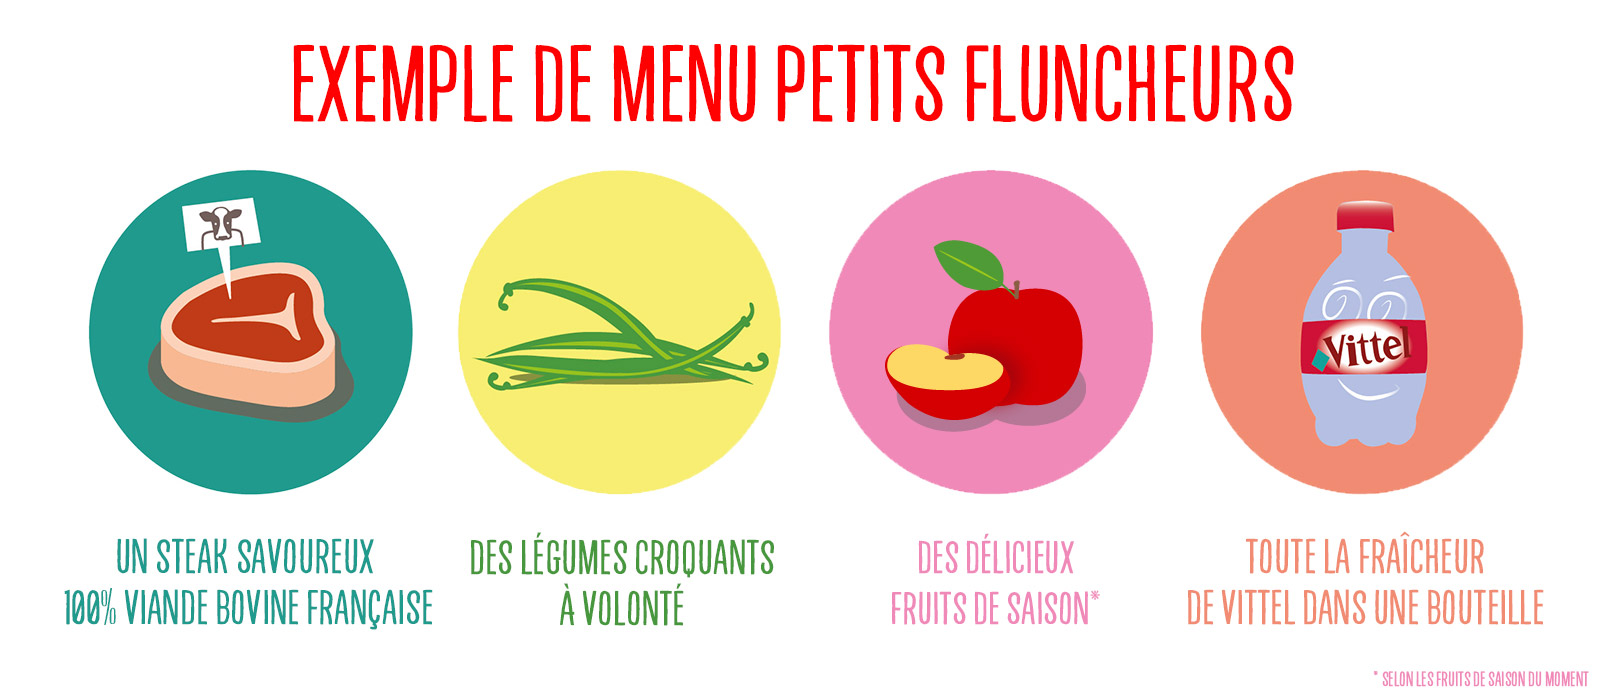 exemple de menu petits fluncheurs